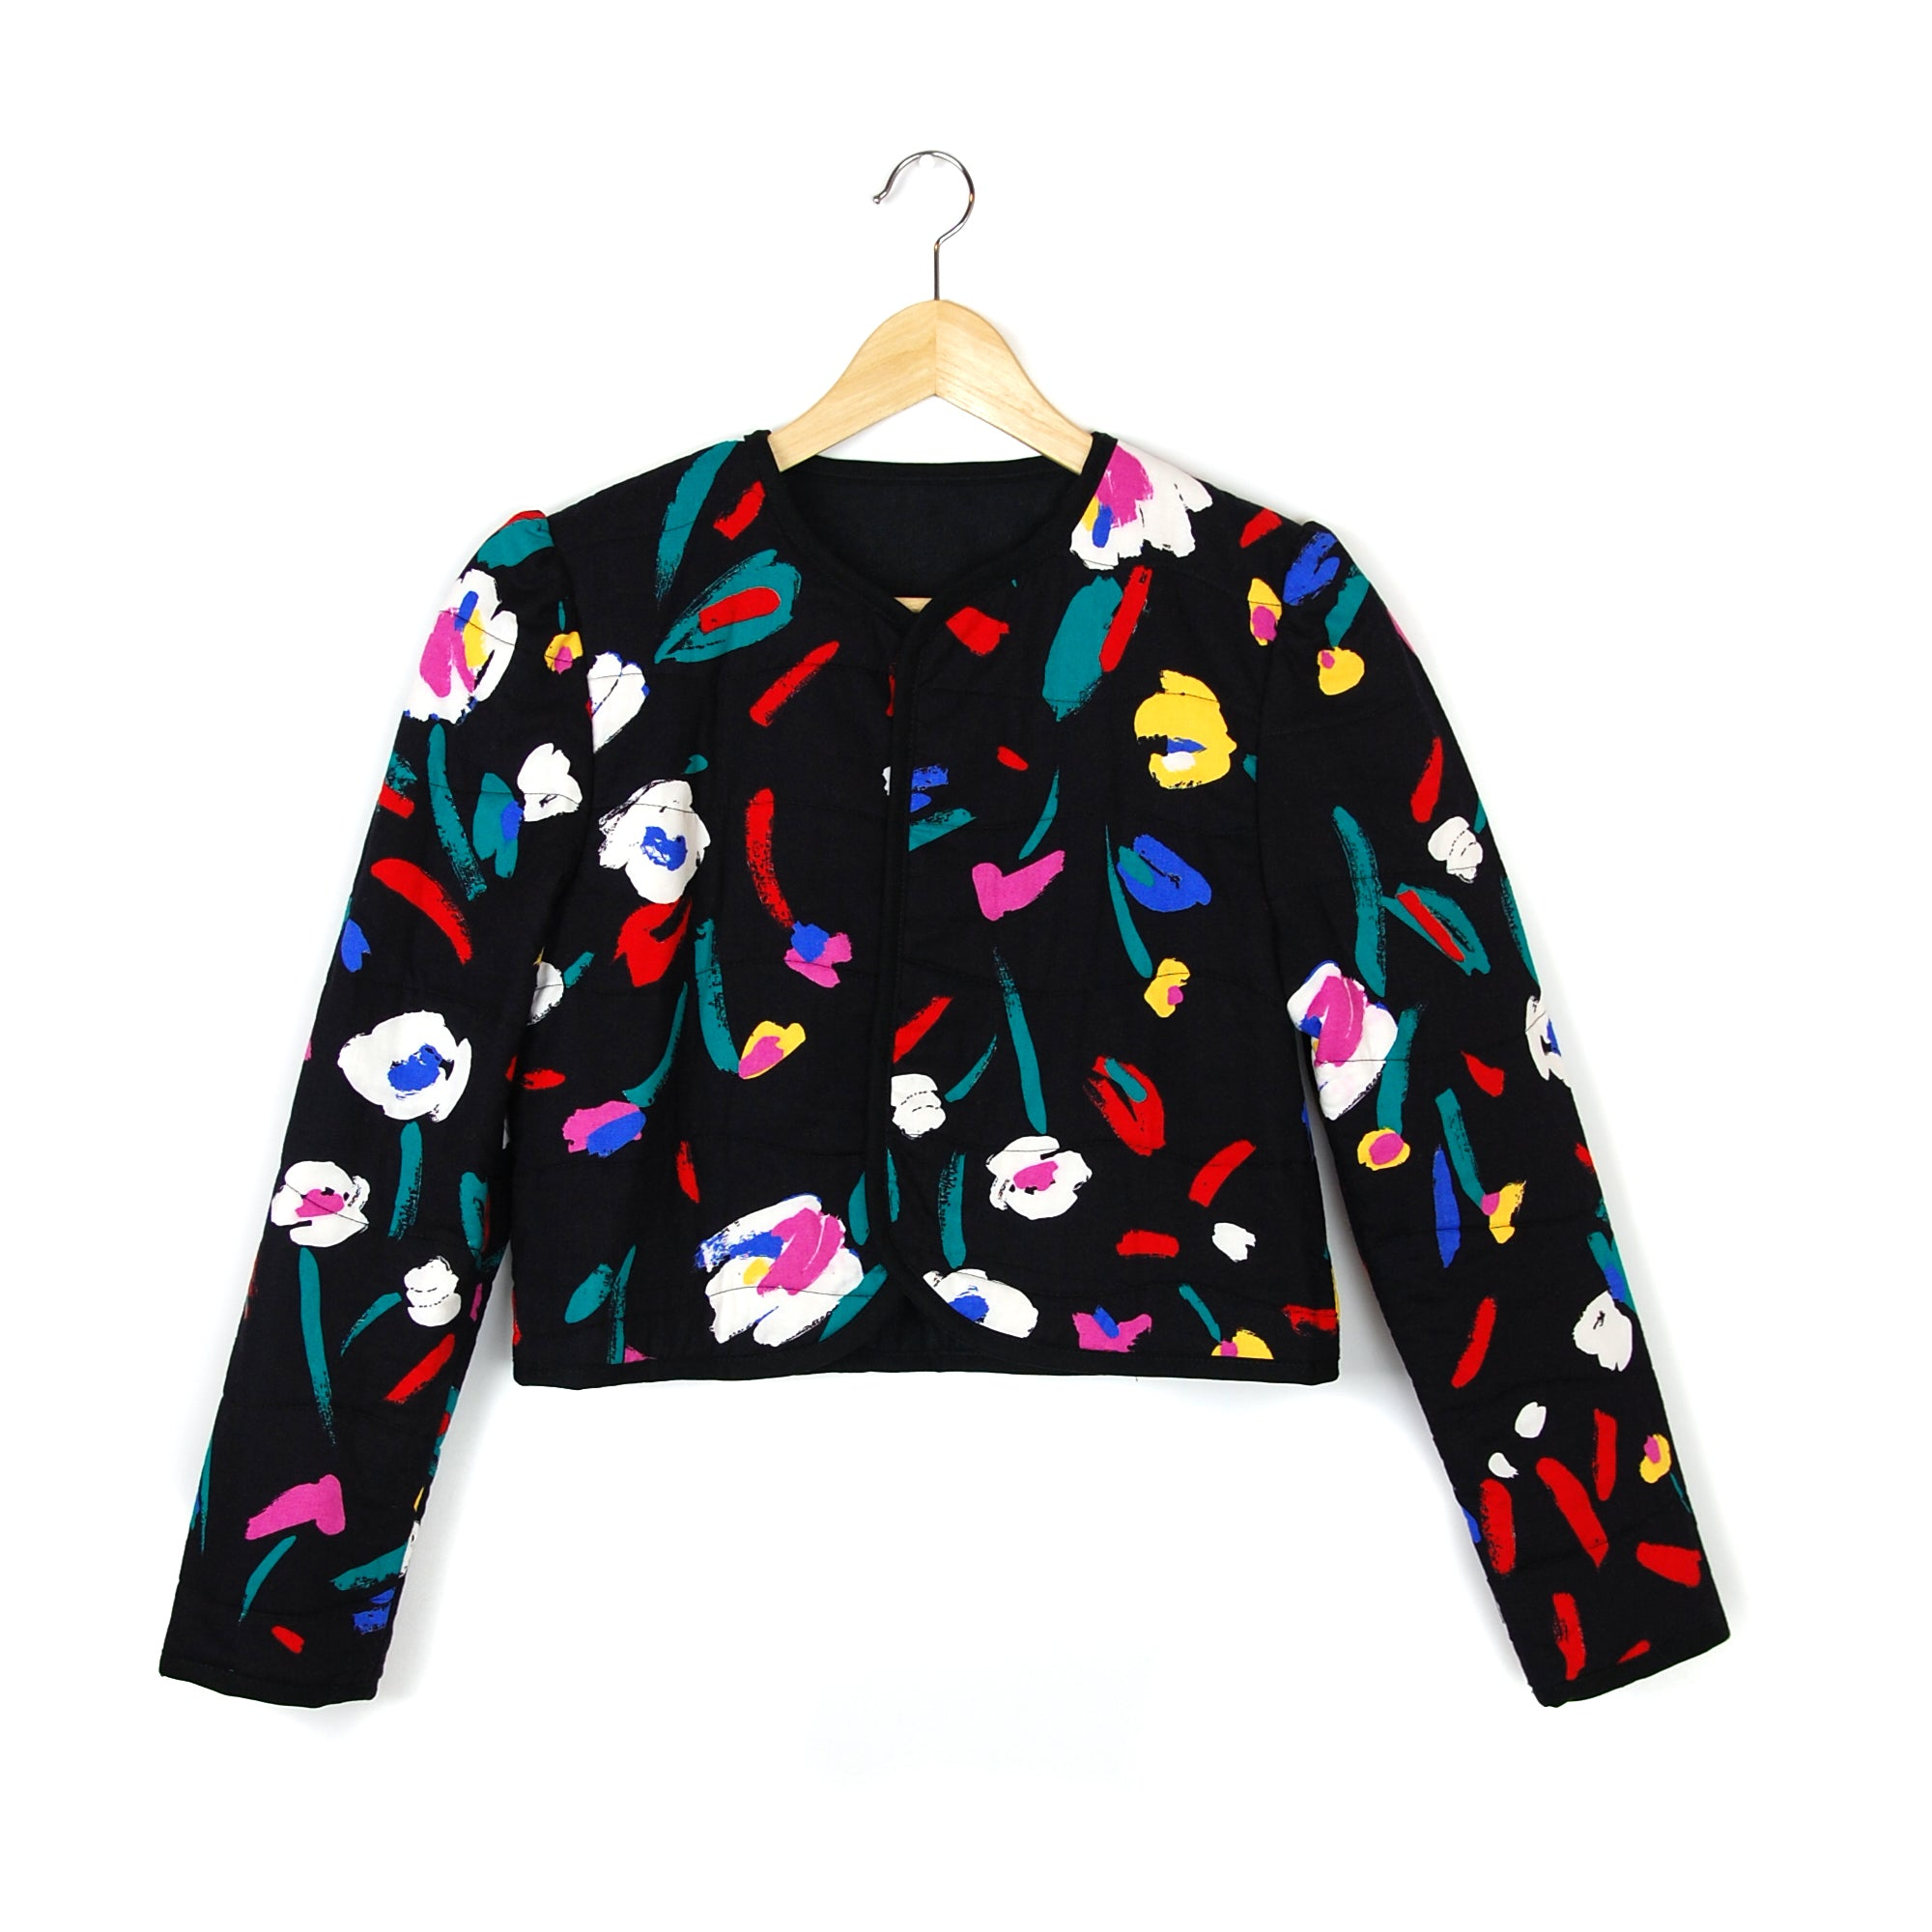 LITE BRITE QUILTED JACKET - Late to the Party